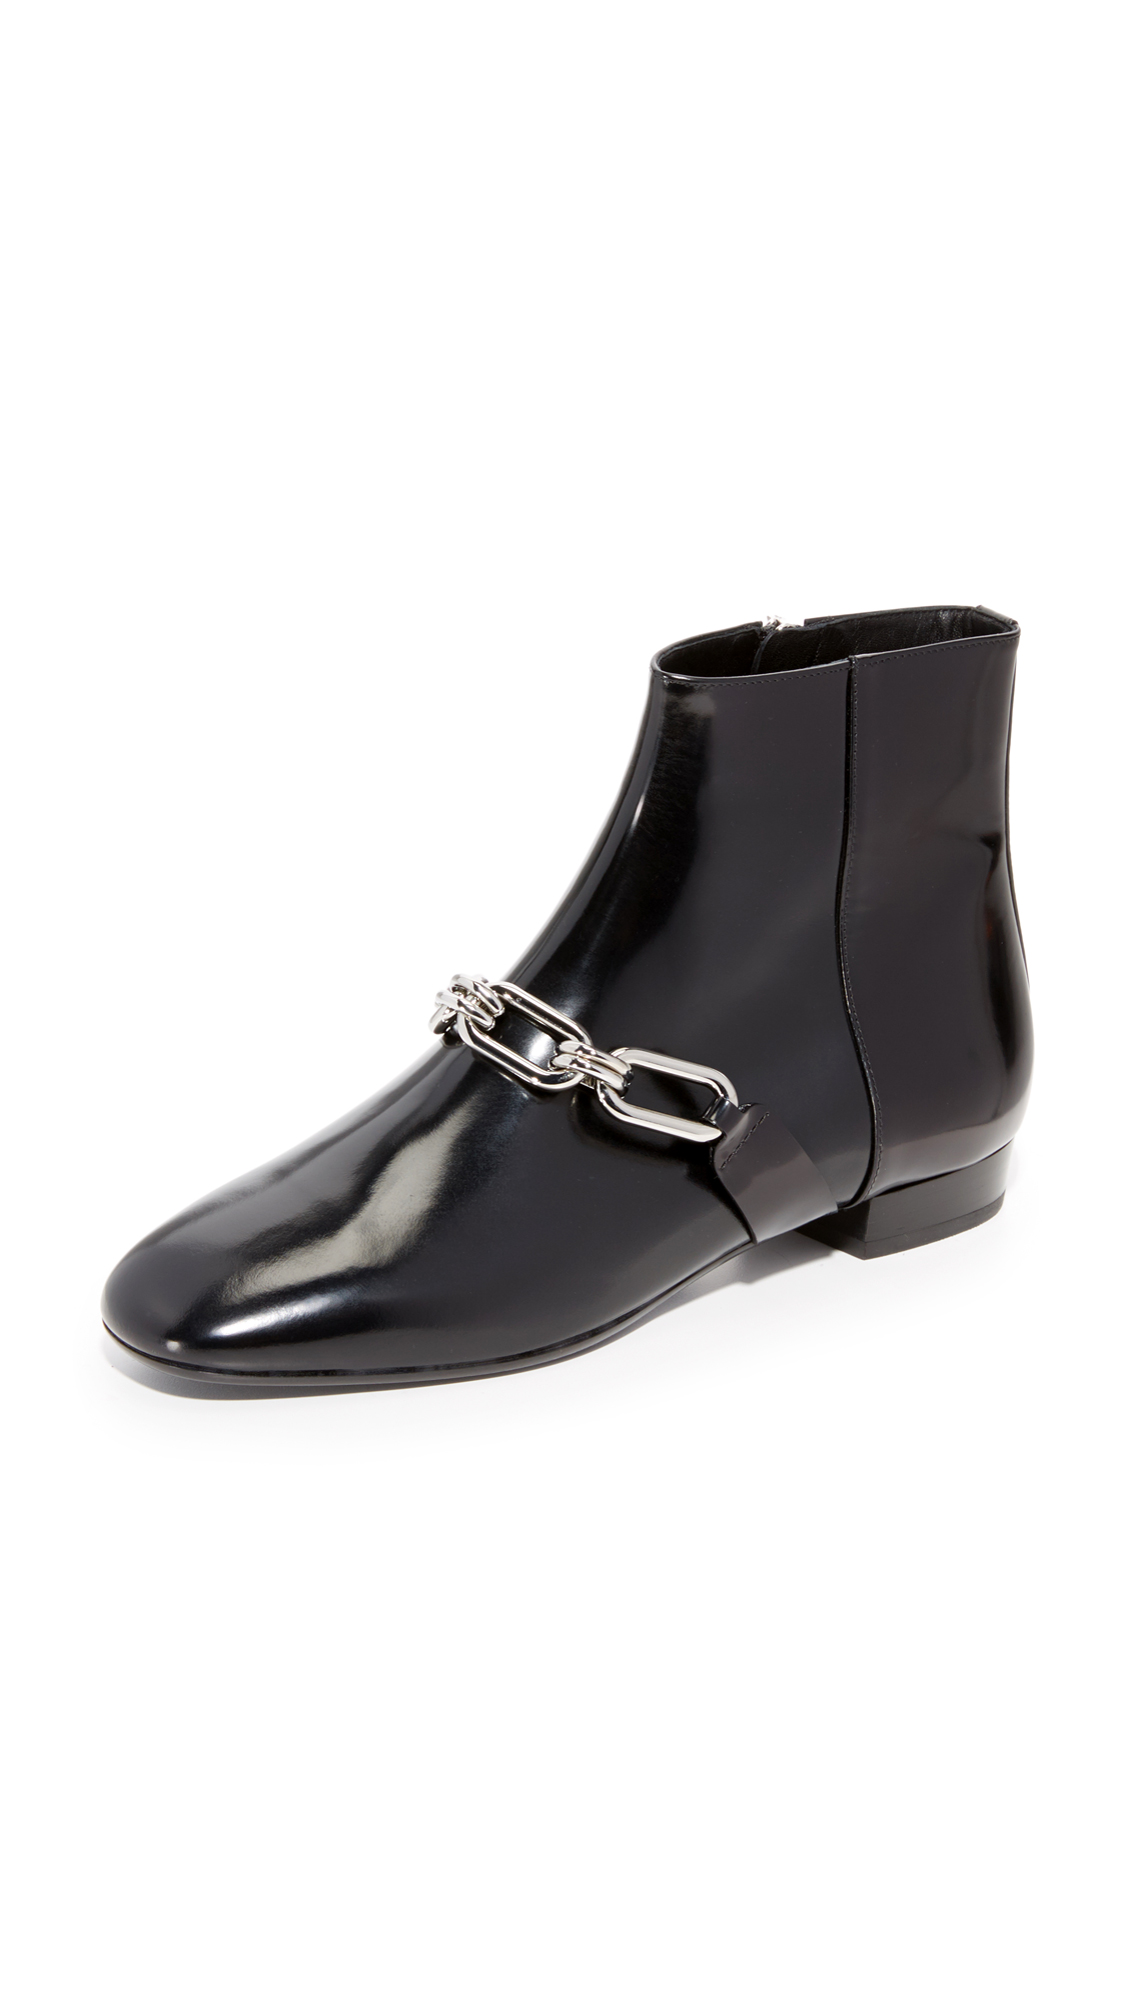 Michael Kors Collection Lennox Ankle Booties - Black